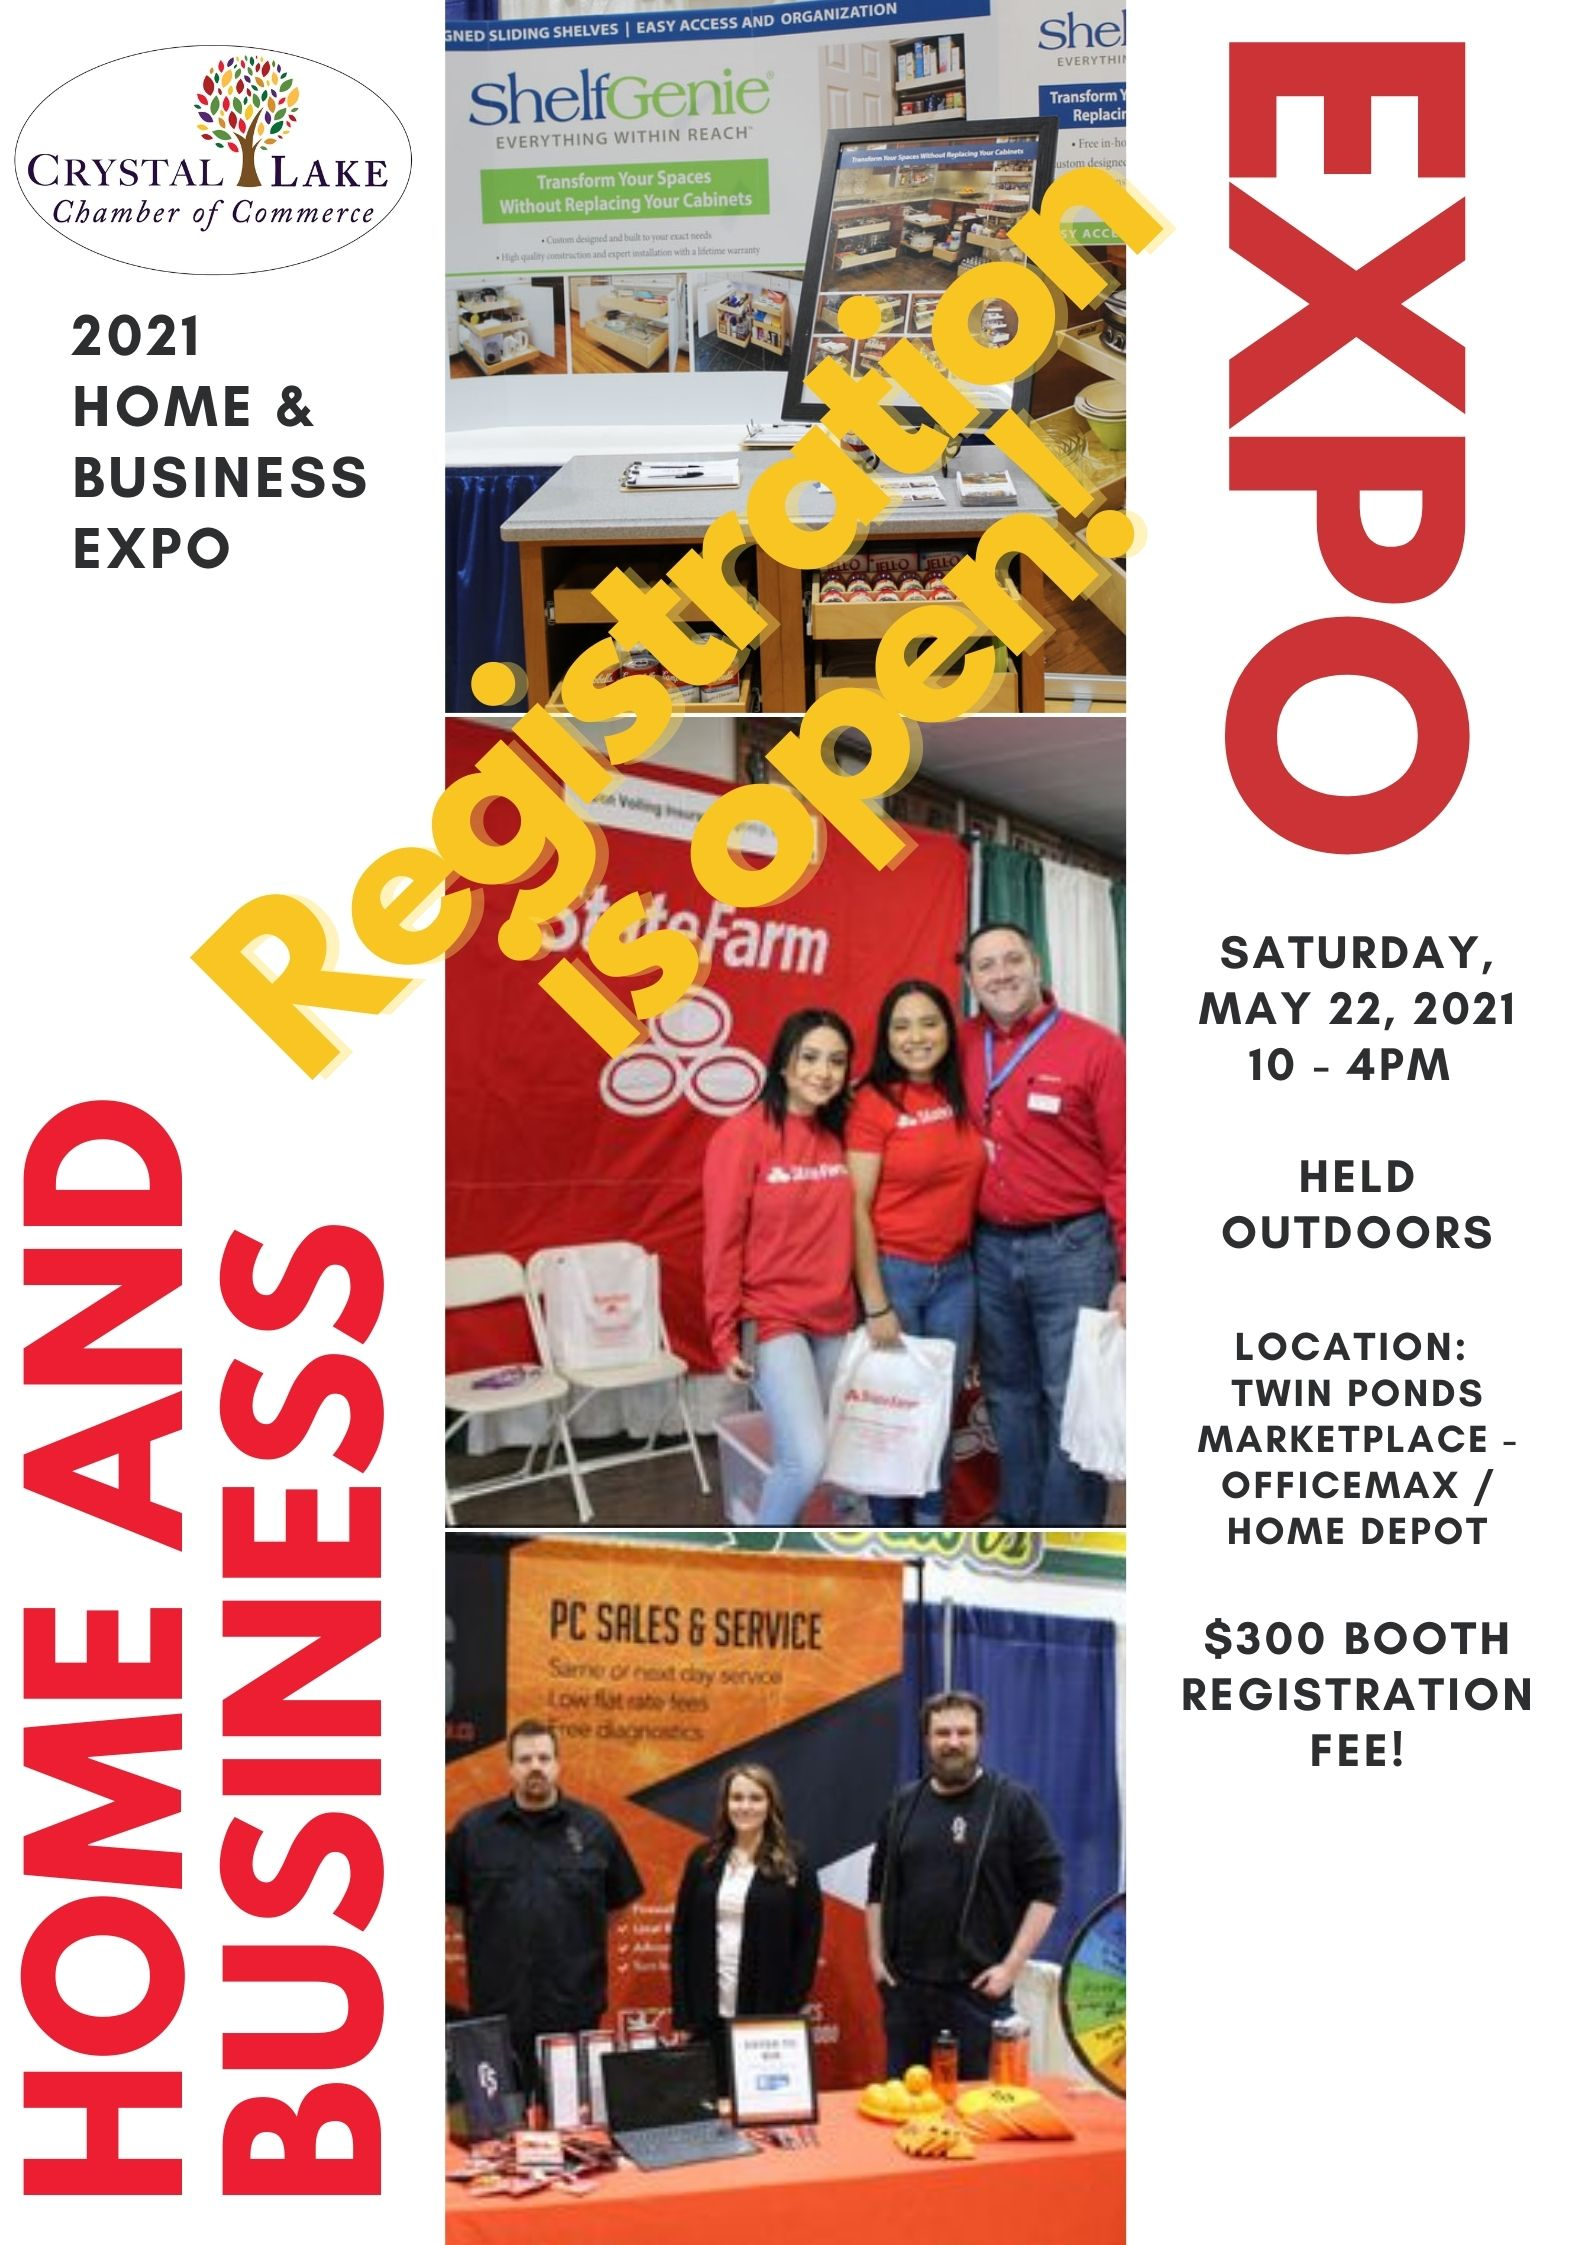 2021 Home and Business Expo Flyer_3.19.21